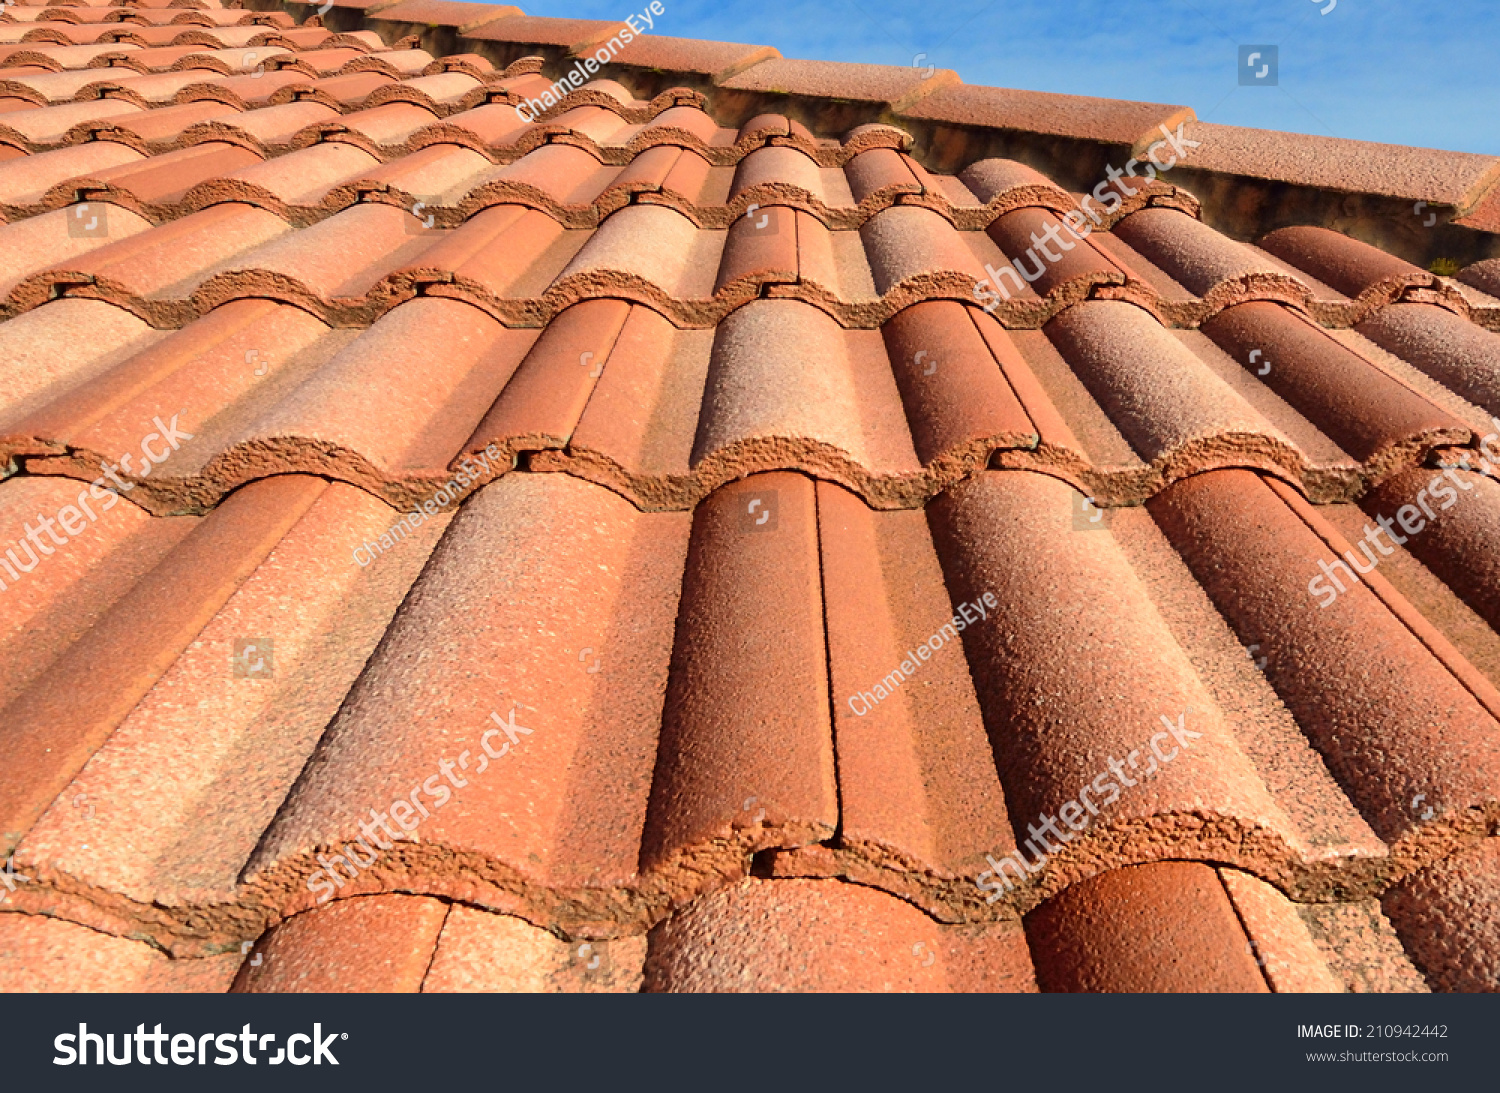 Spanish Style Ceramic Tile Roof Blue Stock Photo Edit Now